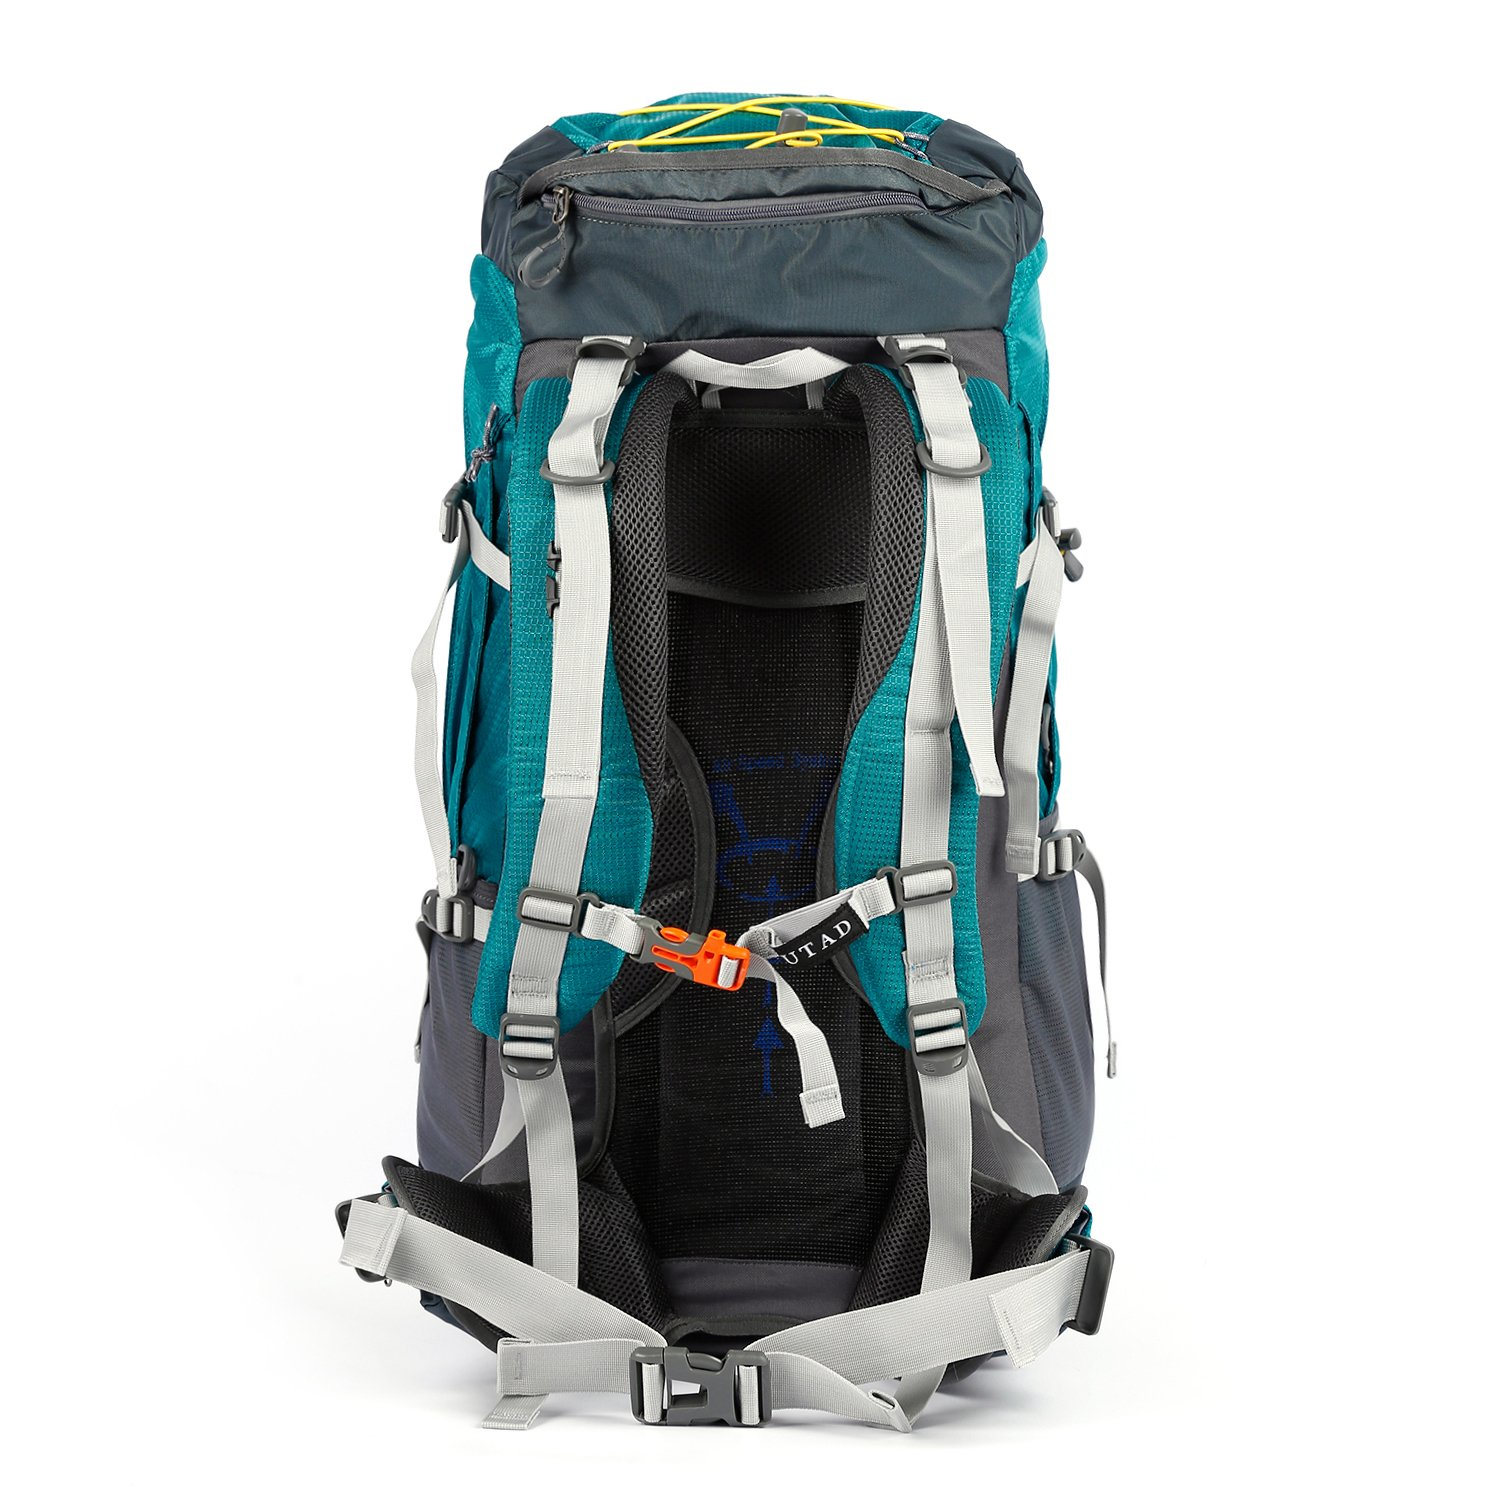 OUTAD 65L60L 5L Hiking Backpack Camping Backpacking Mountaineering Multi Day Pack Lake Blue Internal Frame Backpacks